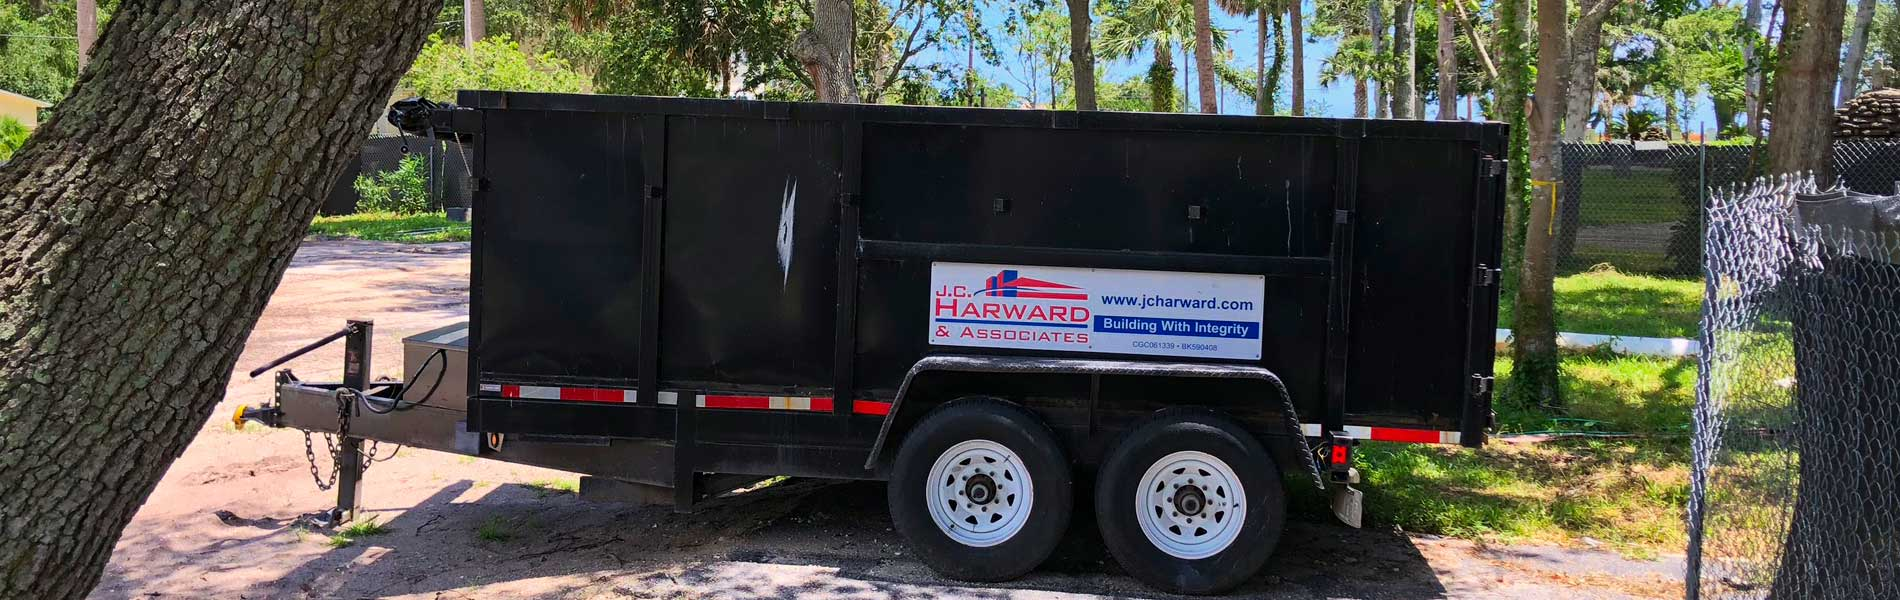 J.C. Harward & Associates construction trailer